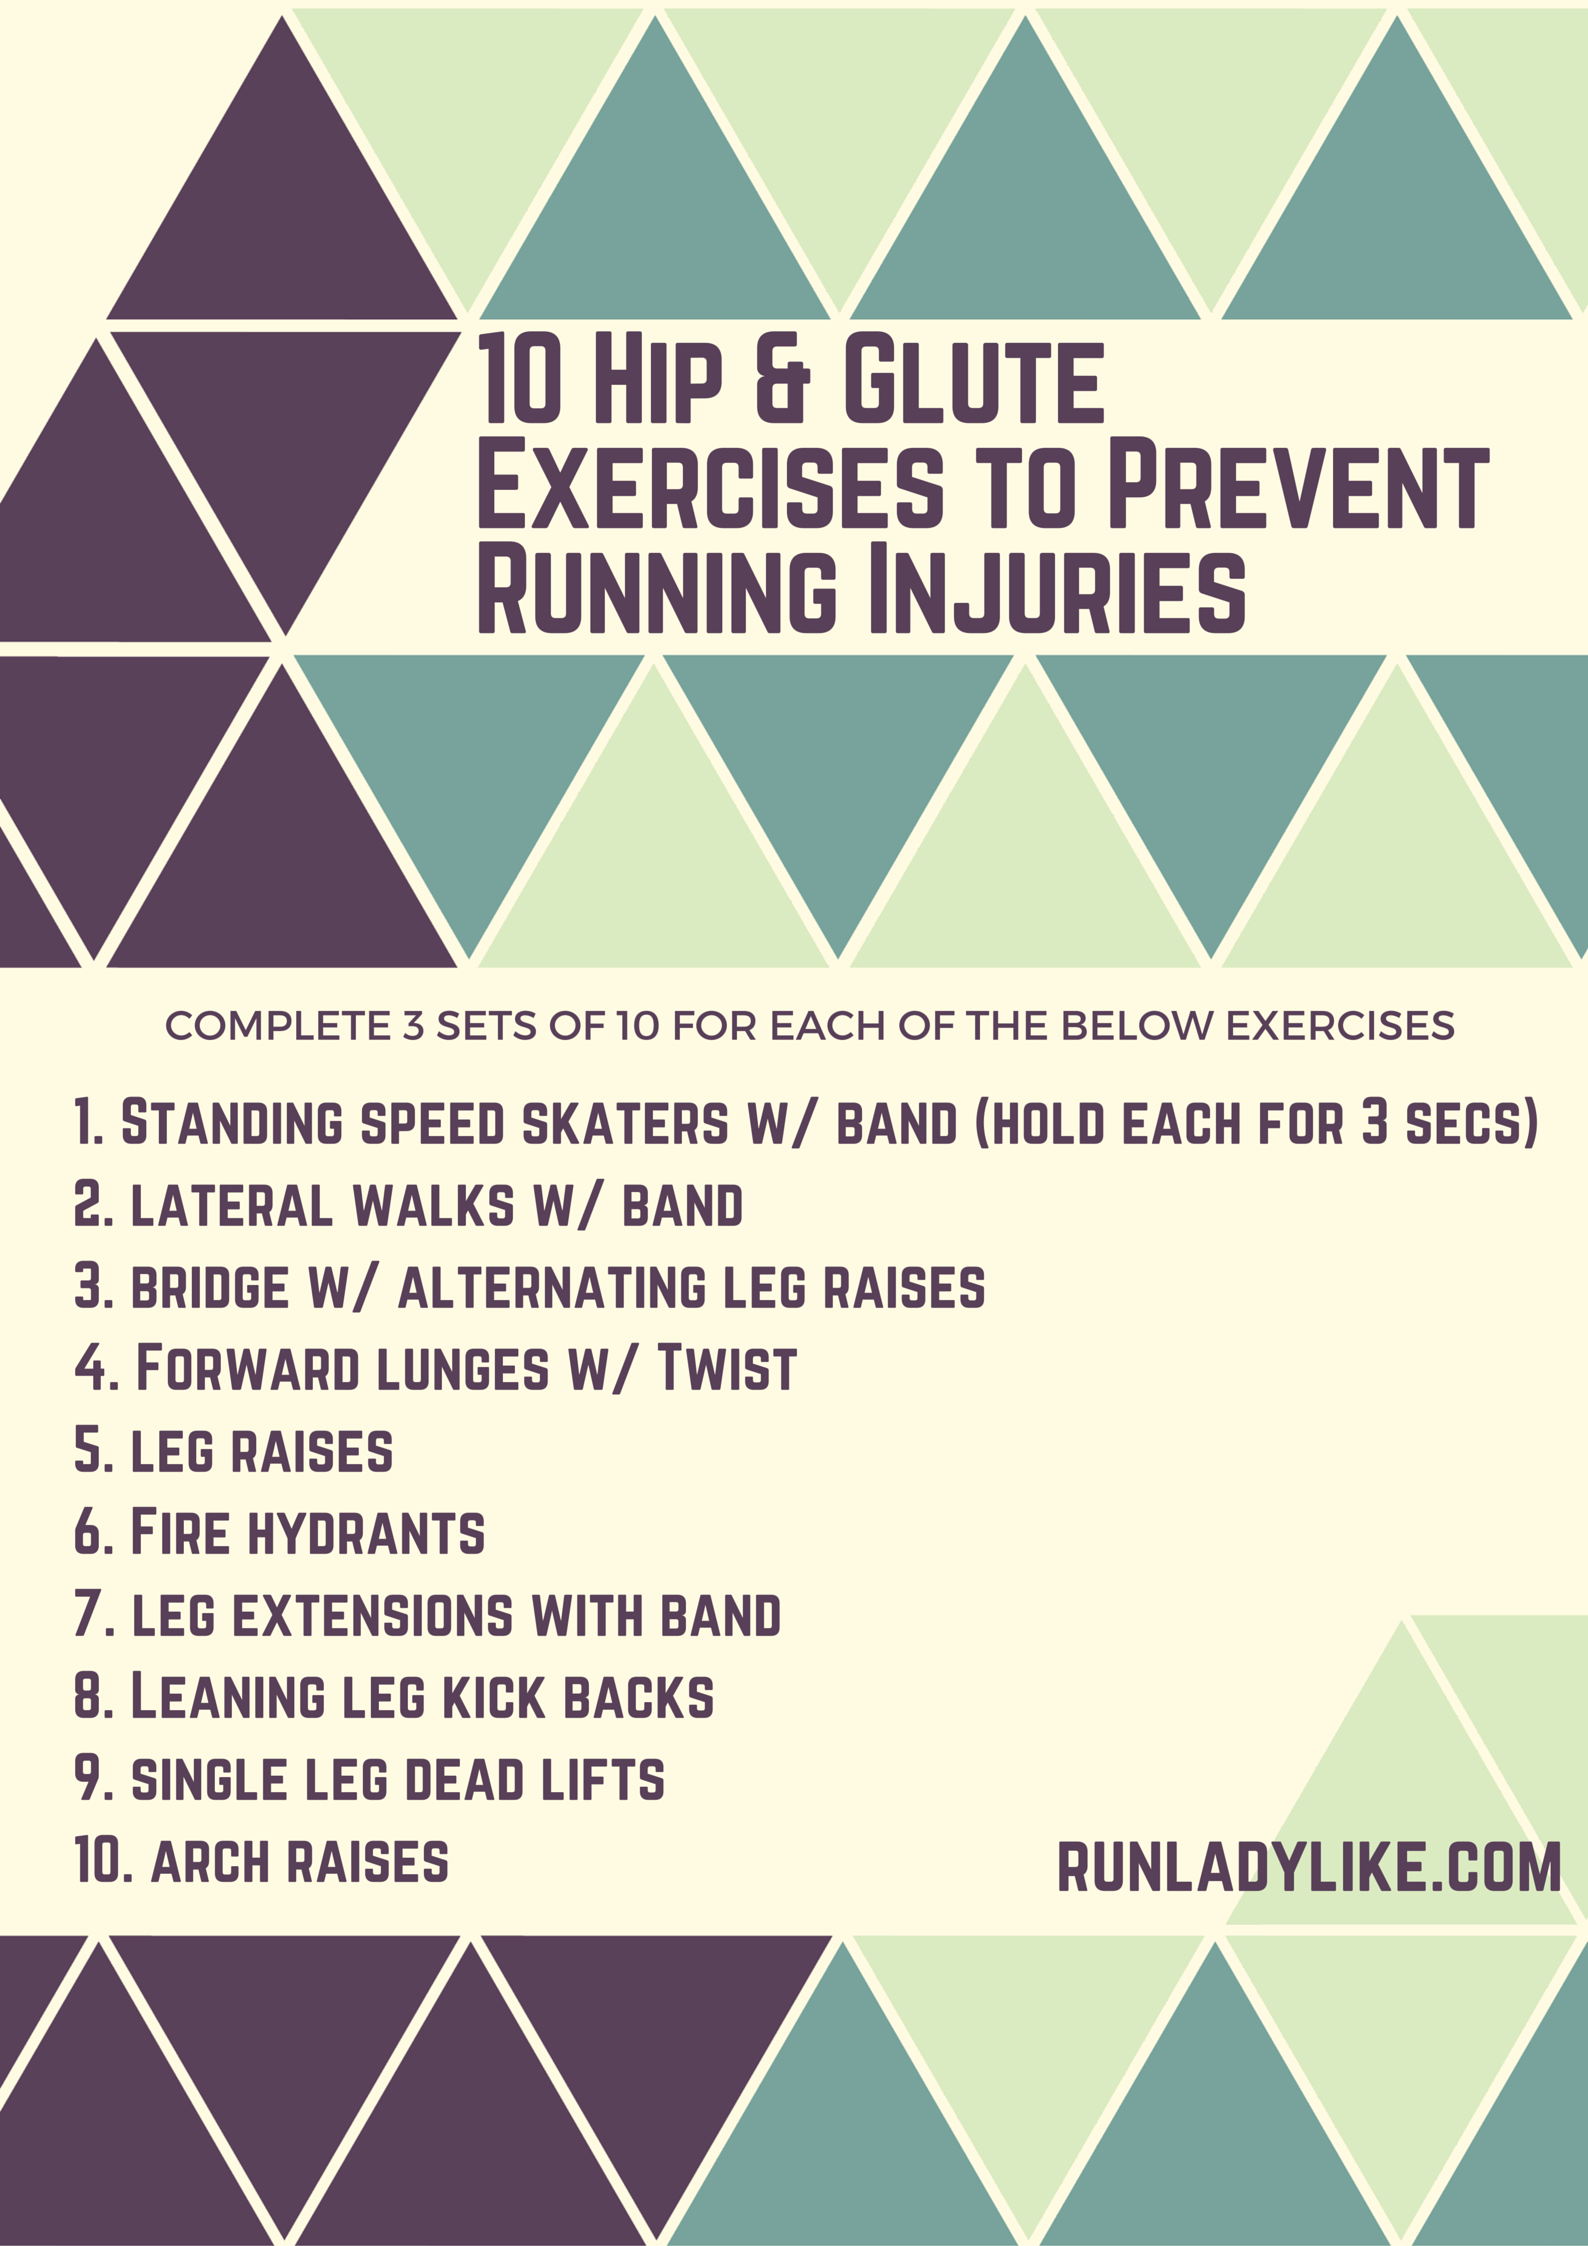 10 Hip & Glute Exercises to Prevent Running Injuries